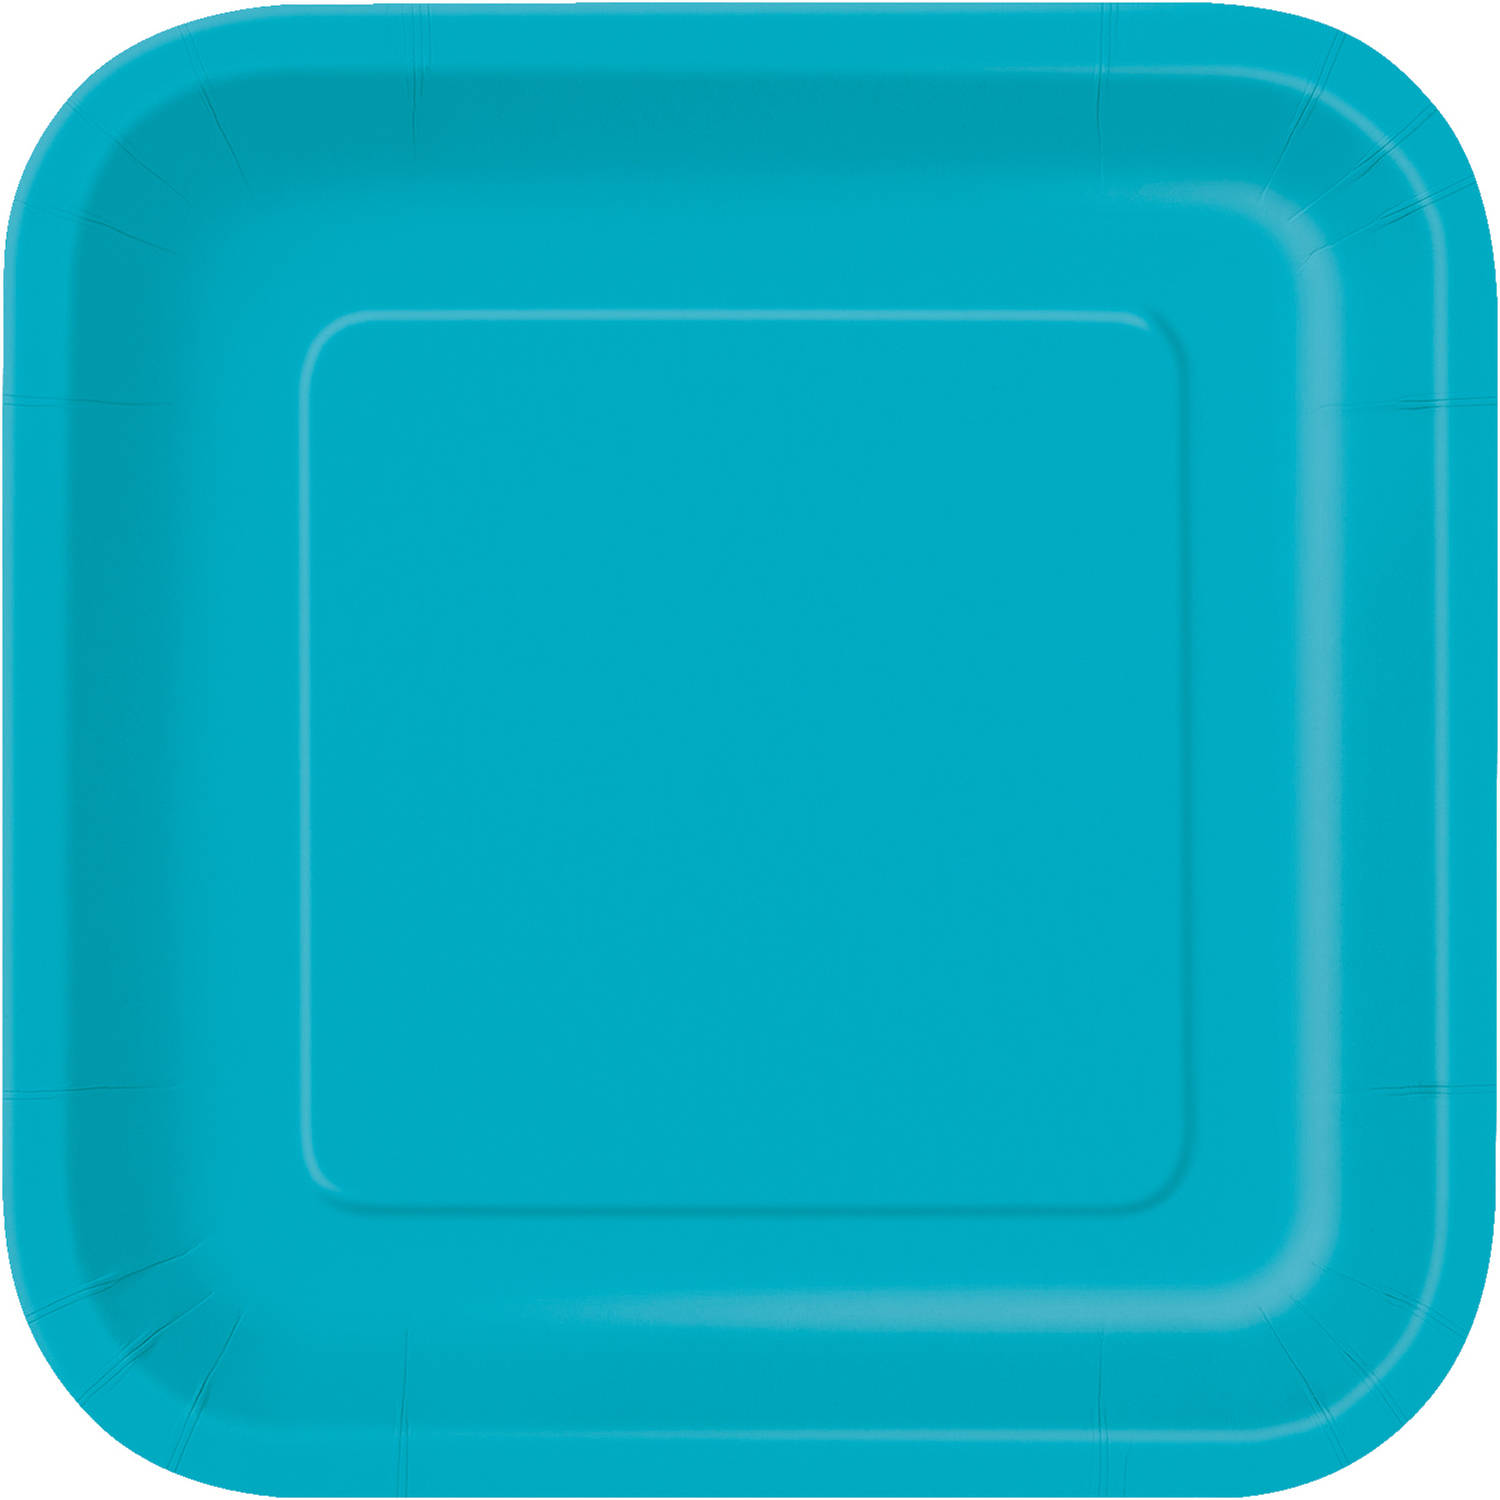 Square Paper Plates, 7 in, Teal, 16ct